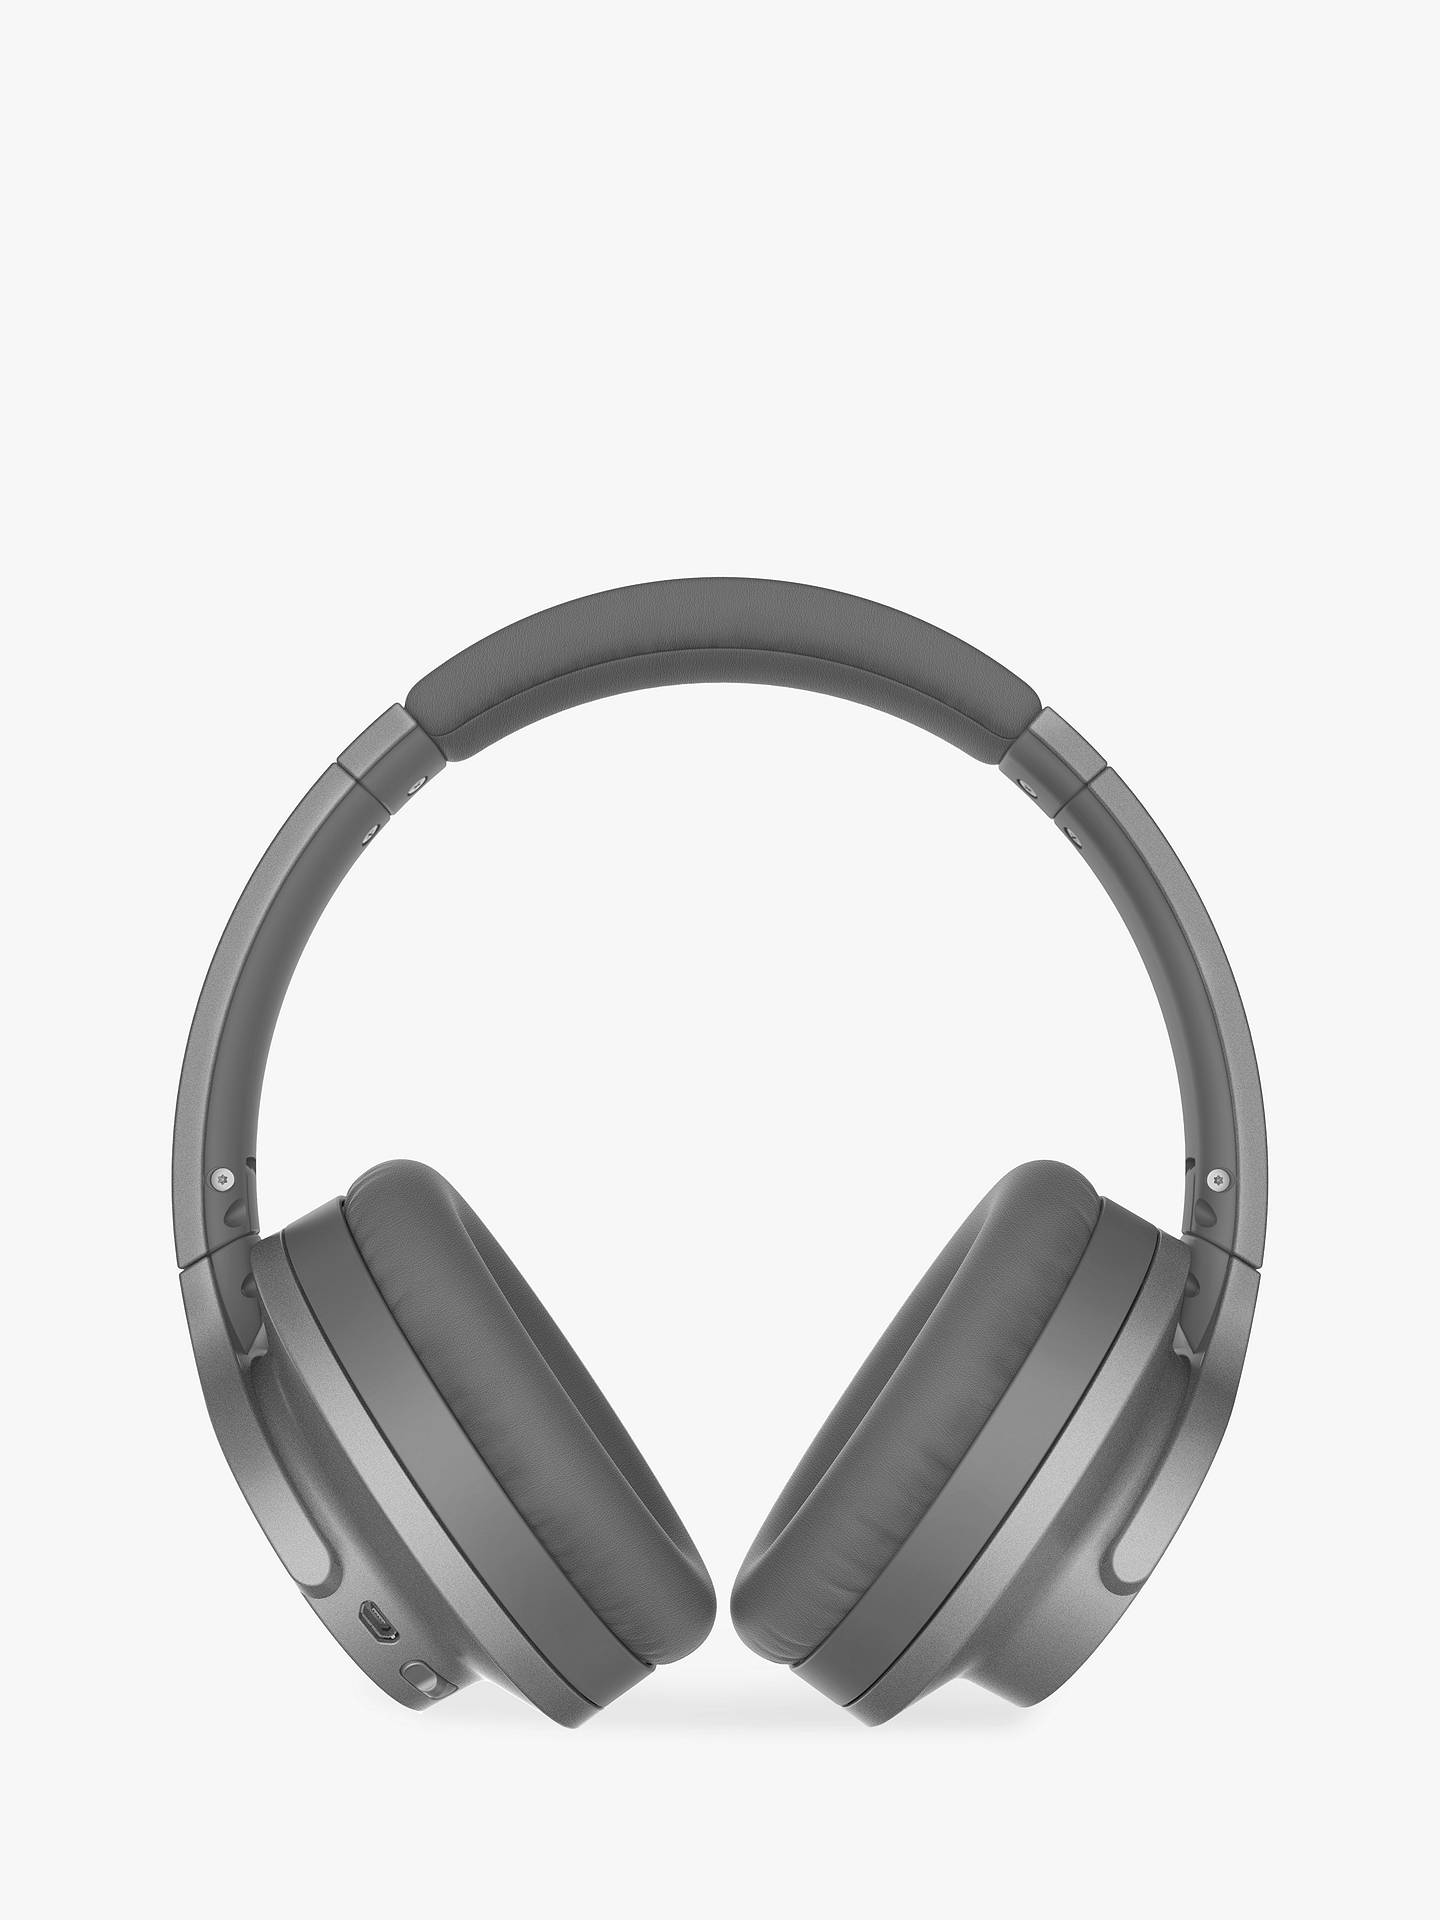 Buy Audio-Technica ATH-ANC700BT Active Noise-Cancelling Wireless Bluetooth Over-Ear Headphones, Grey Online at johnlewis.com